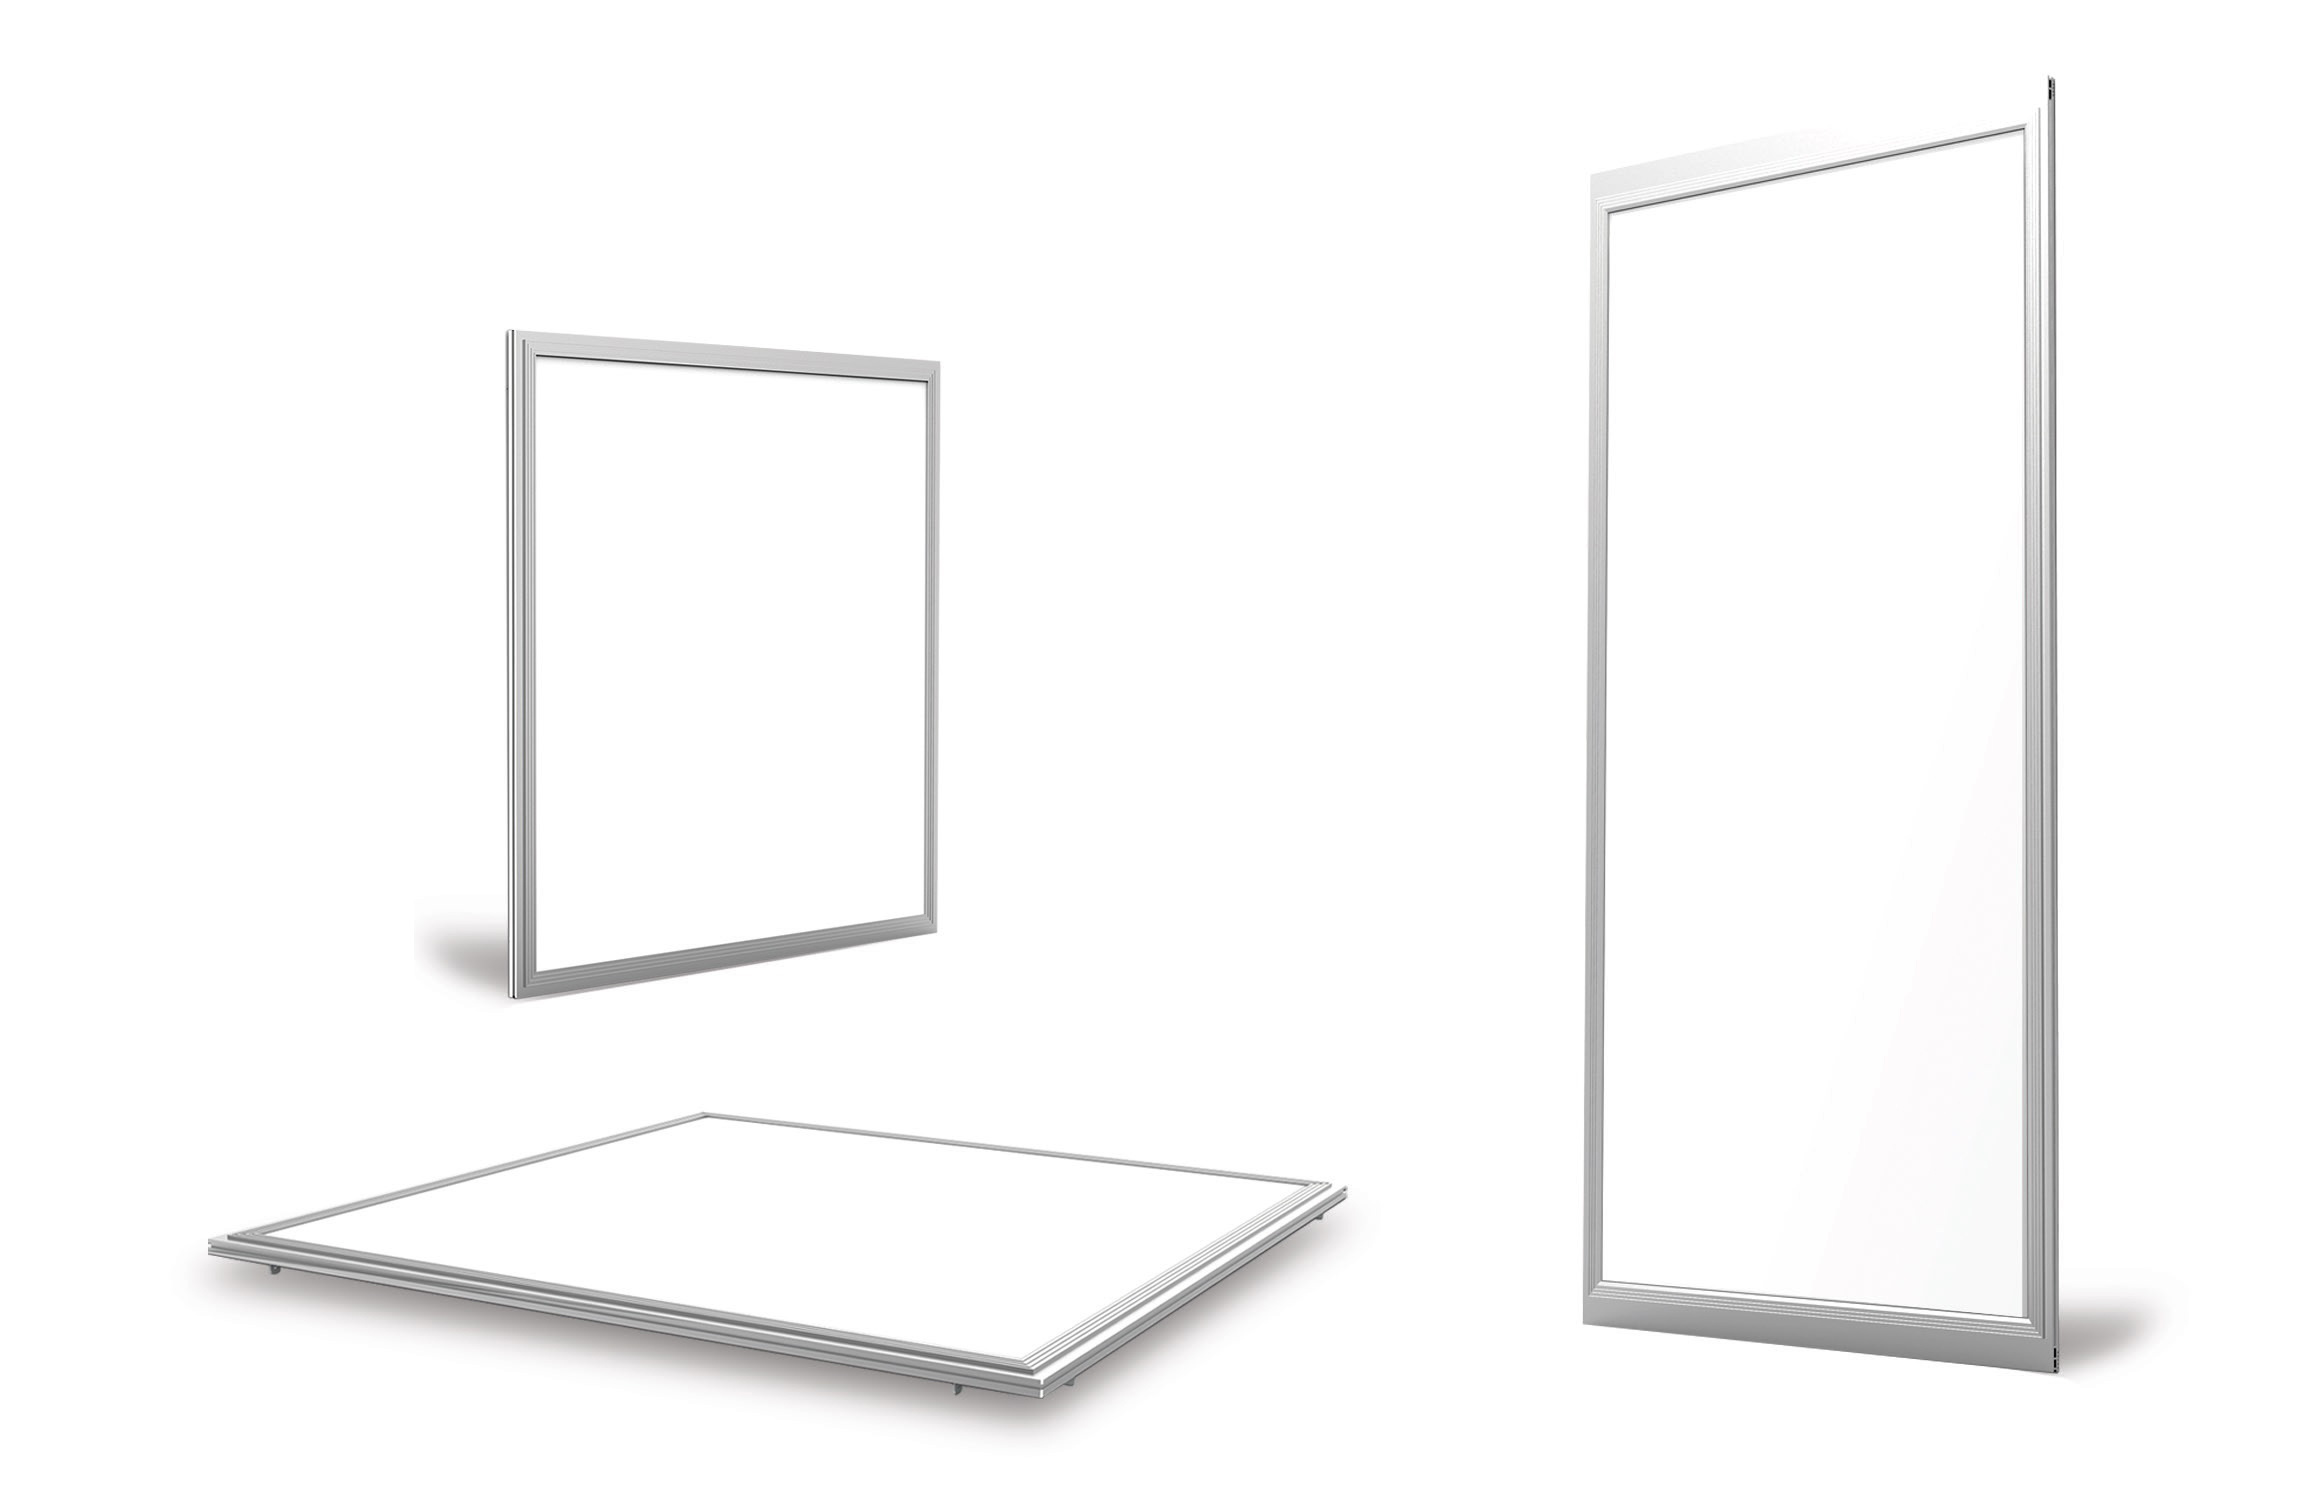 LED Panel Light 600X600, 2ftx2FT Ceiling Light